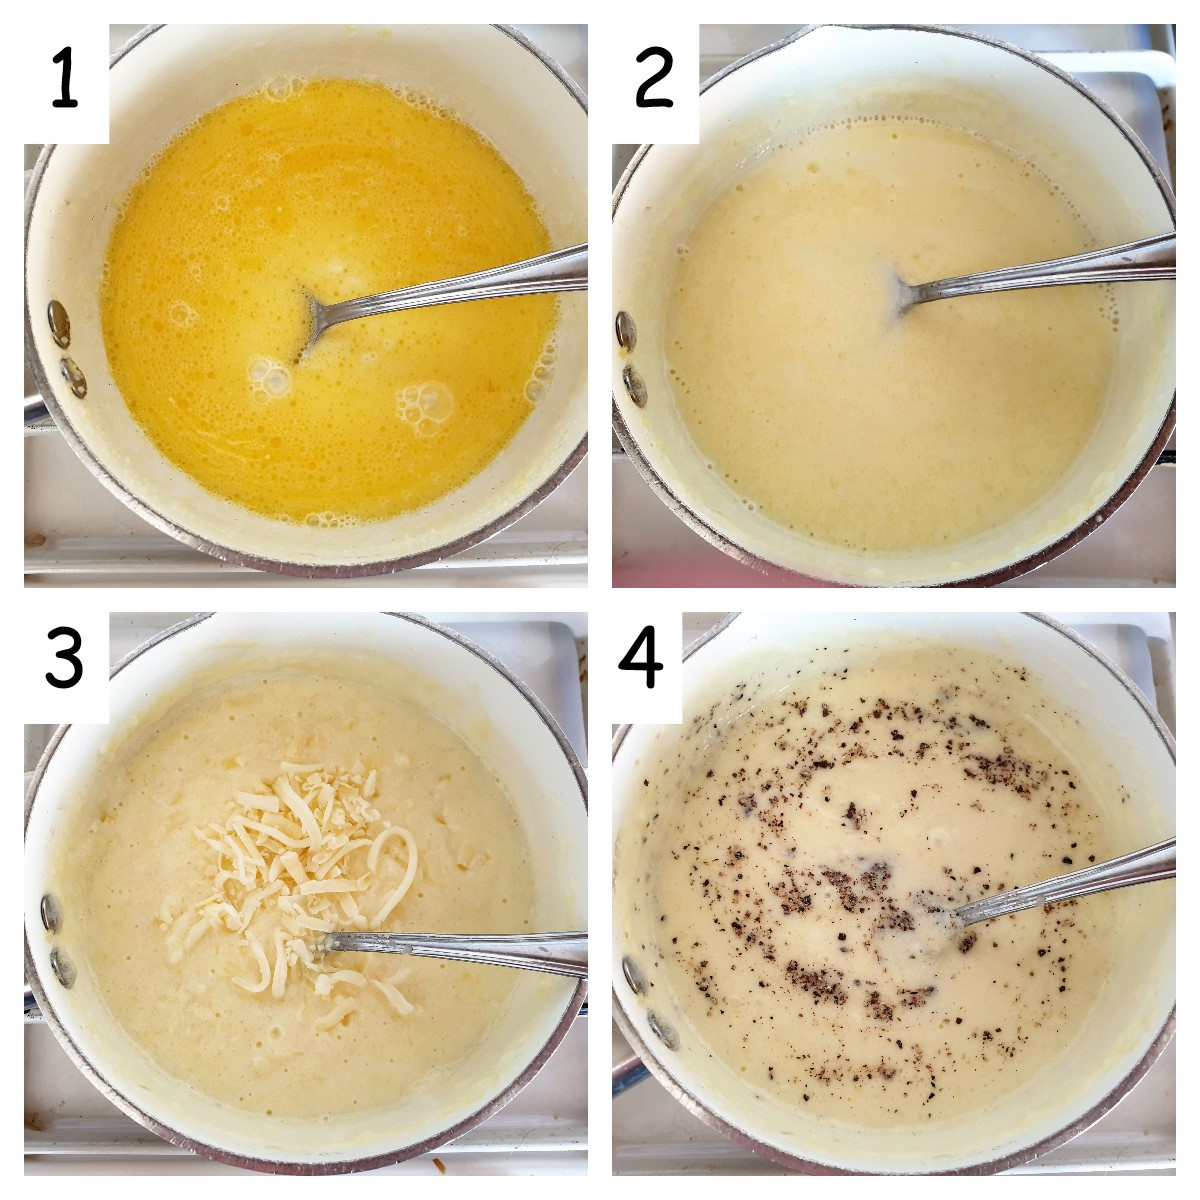 A collage of 4 images showing the steps for making the cheese sauce.